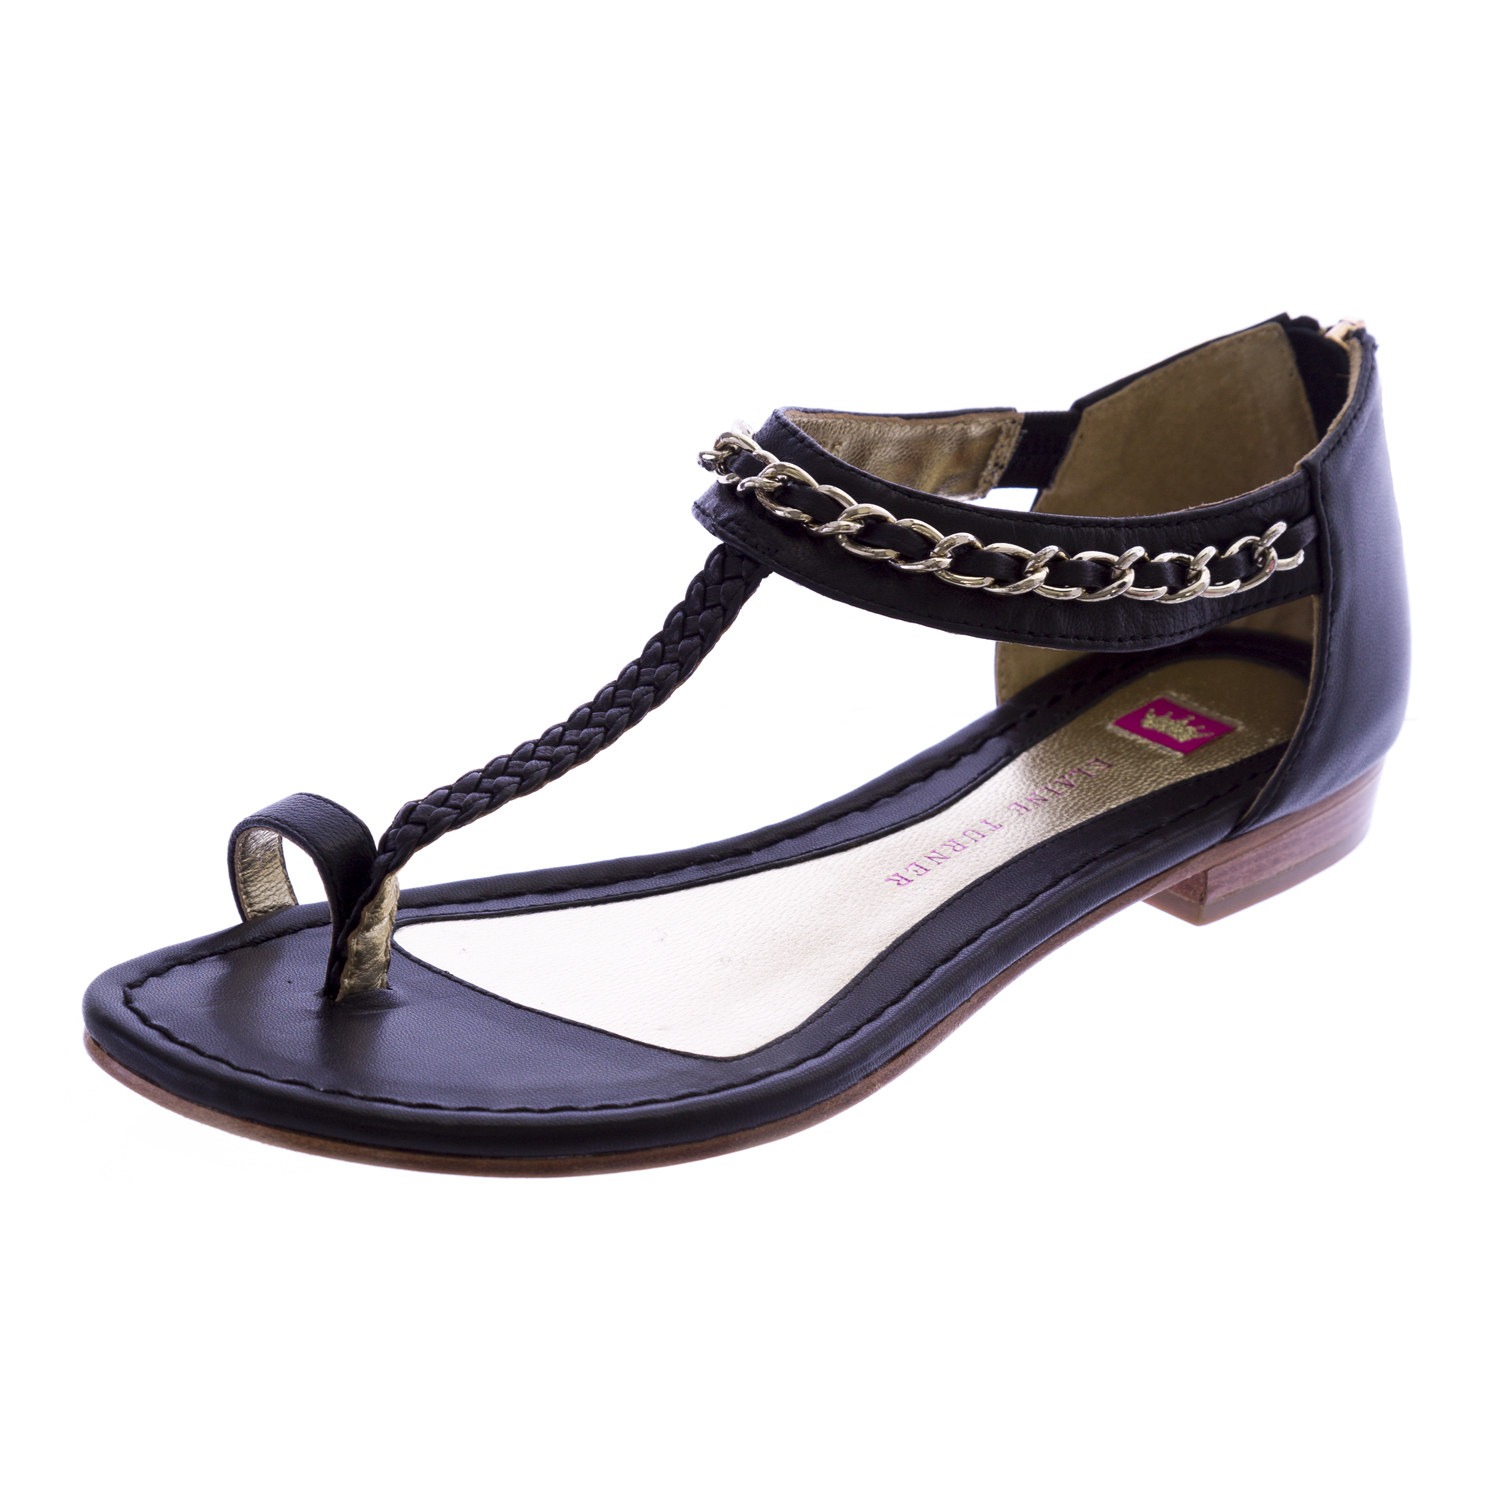 ELAINE TURNER Diane-SP12 Zip Back Leather Sandals Black